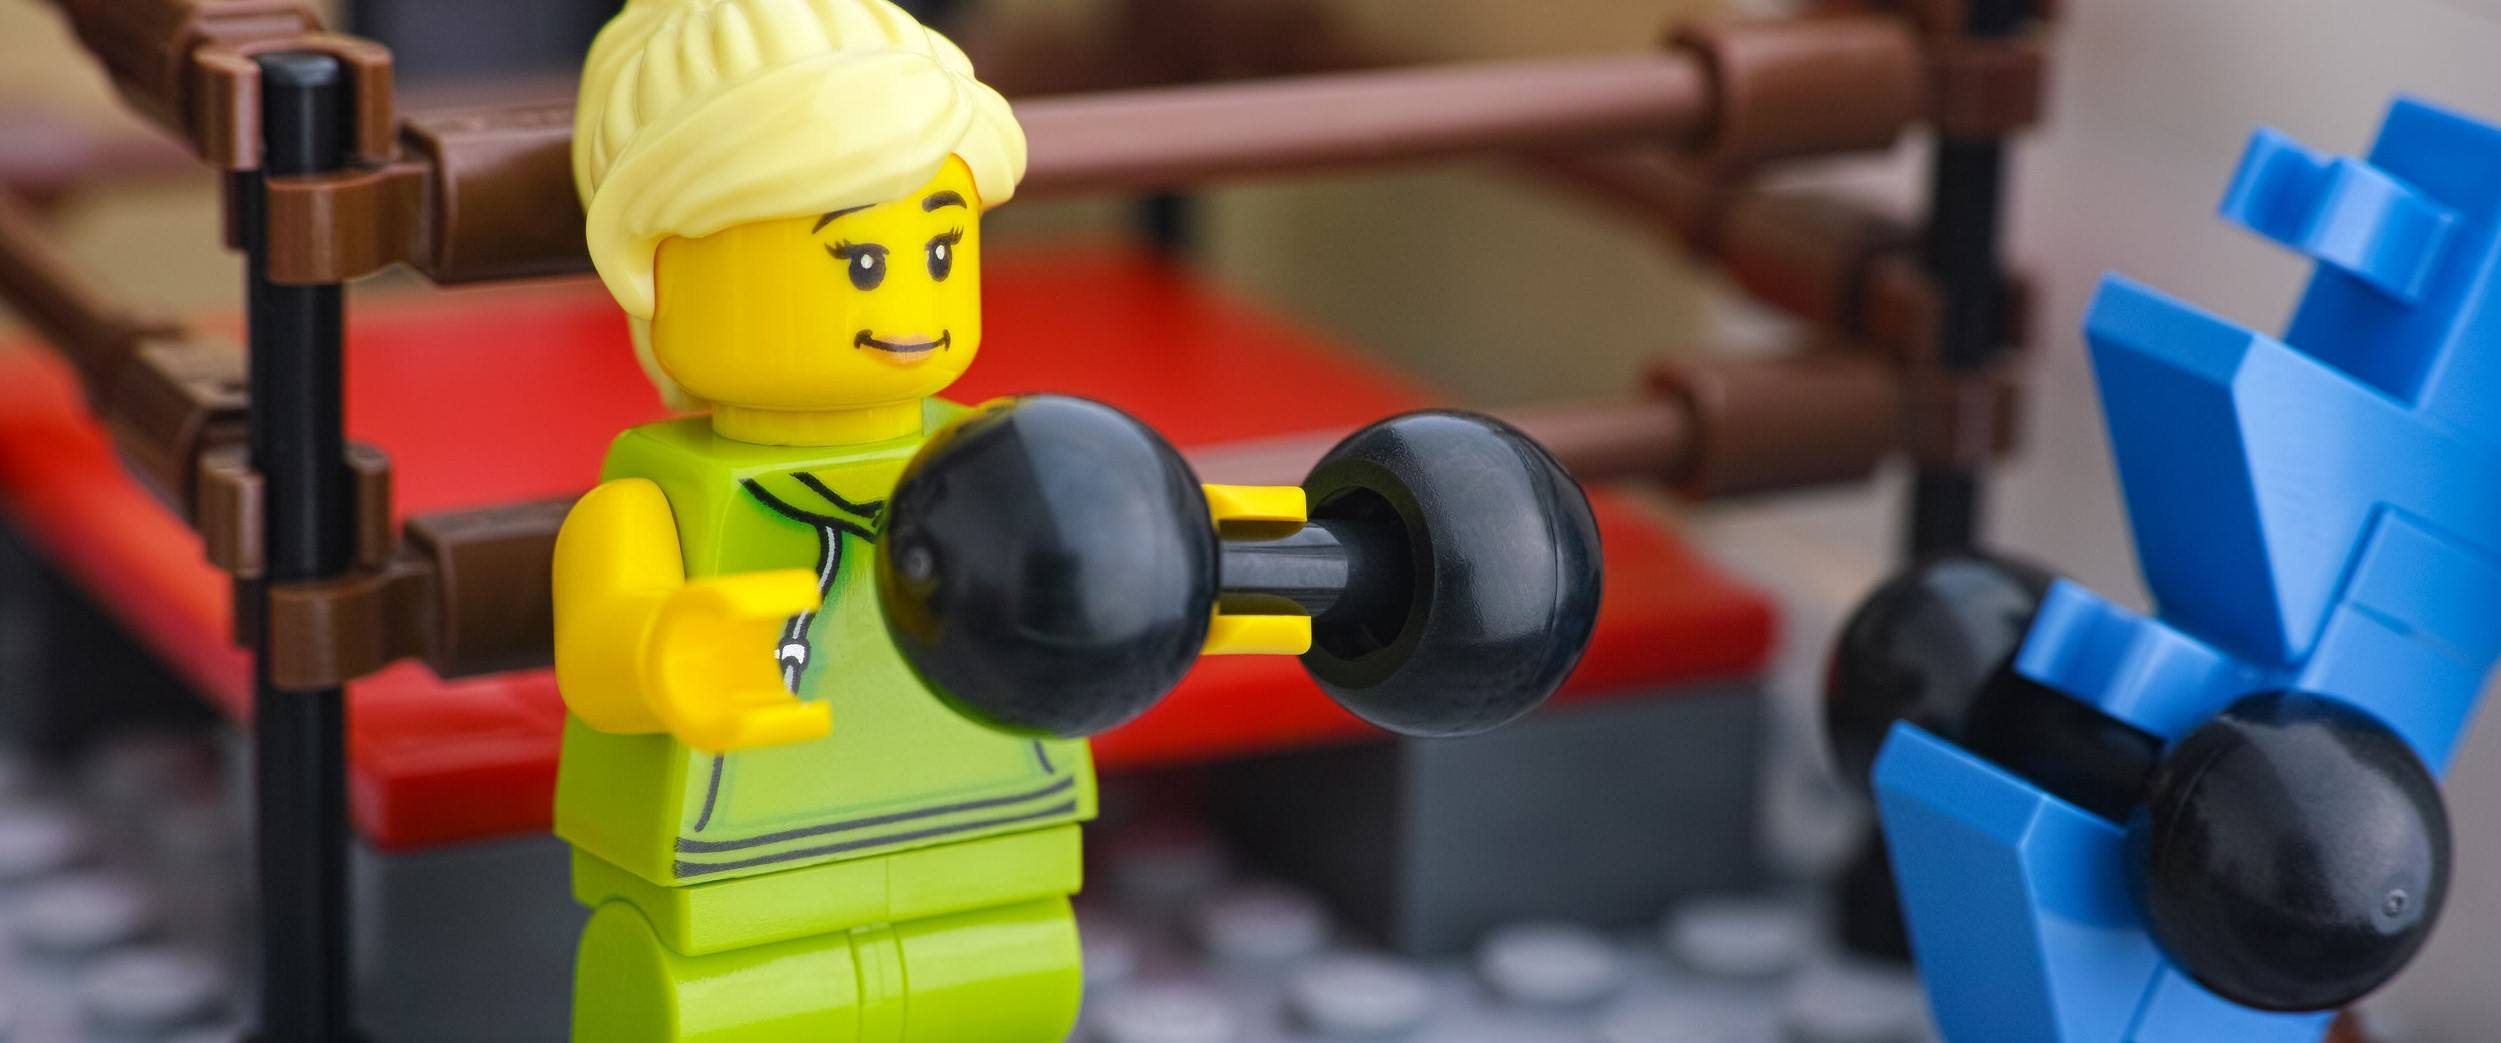 Lego woman minifigure lifting weights in a gym